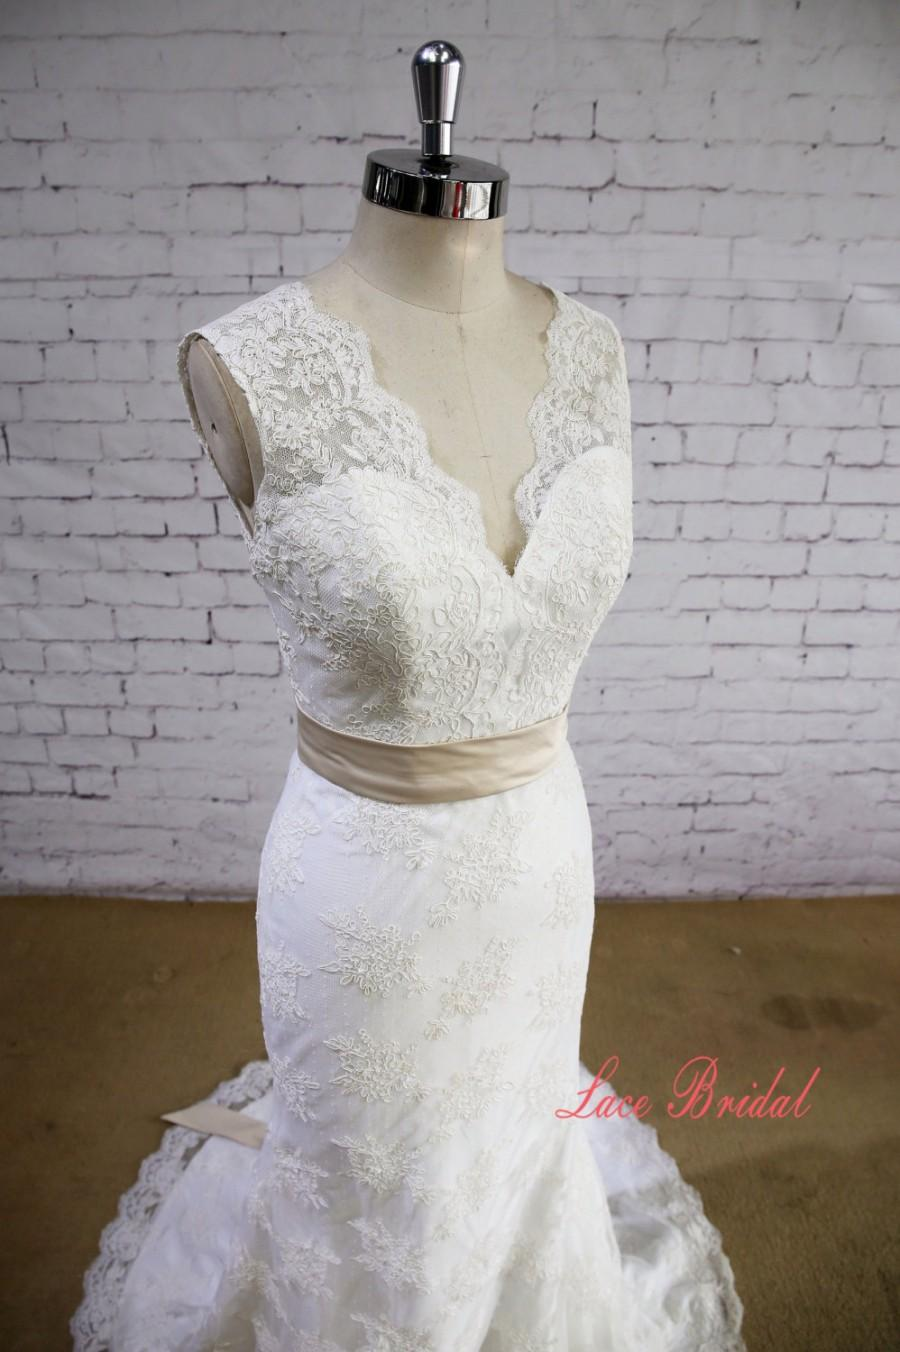 Wedding - Lace Applique Skirt Wedding Dress Mermaid Bridal Gown V-neck Wedding Gown with Train Ivory Color Wedding Gown Elegant Style Wedding Dress